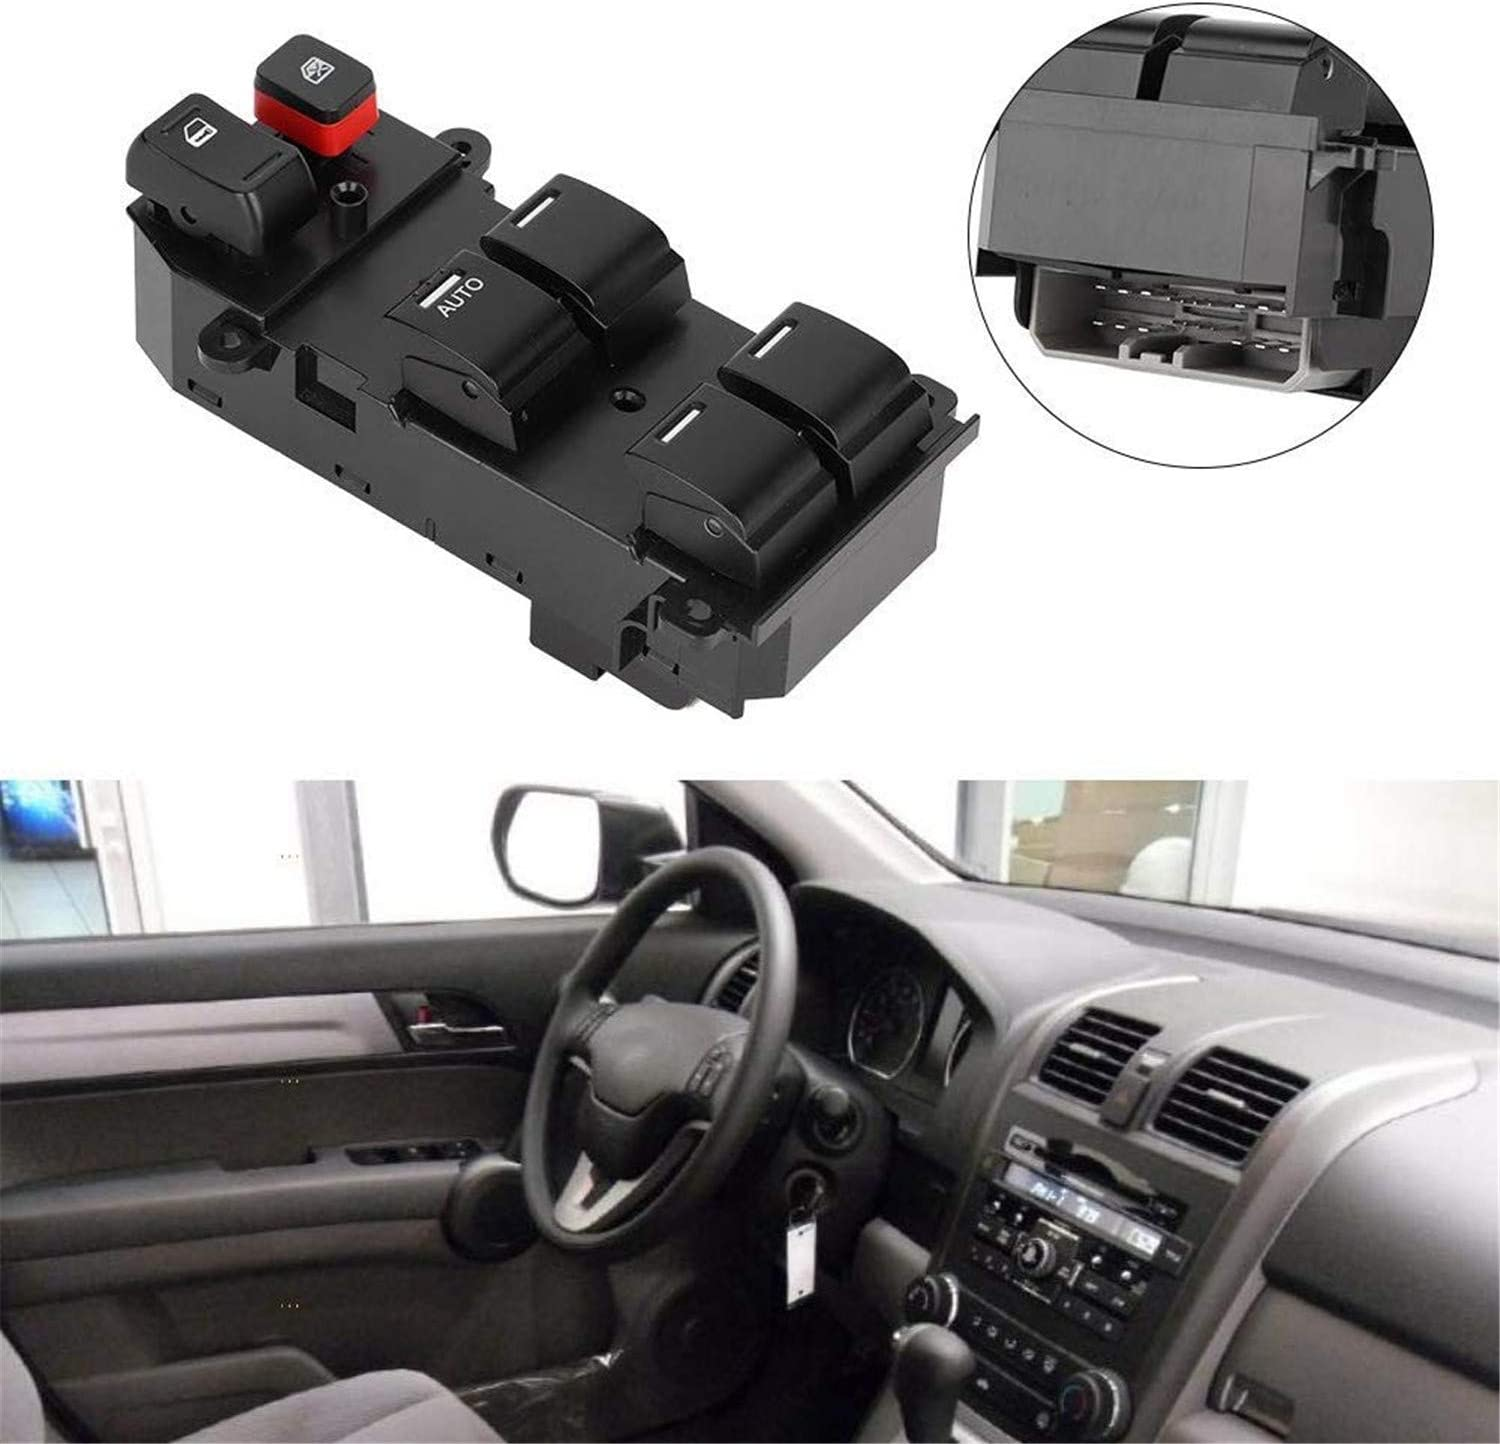 NEW Fit 2002-2006 Honda CR-V Electric Power Window Master Control Door Switch